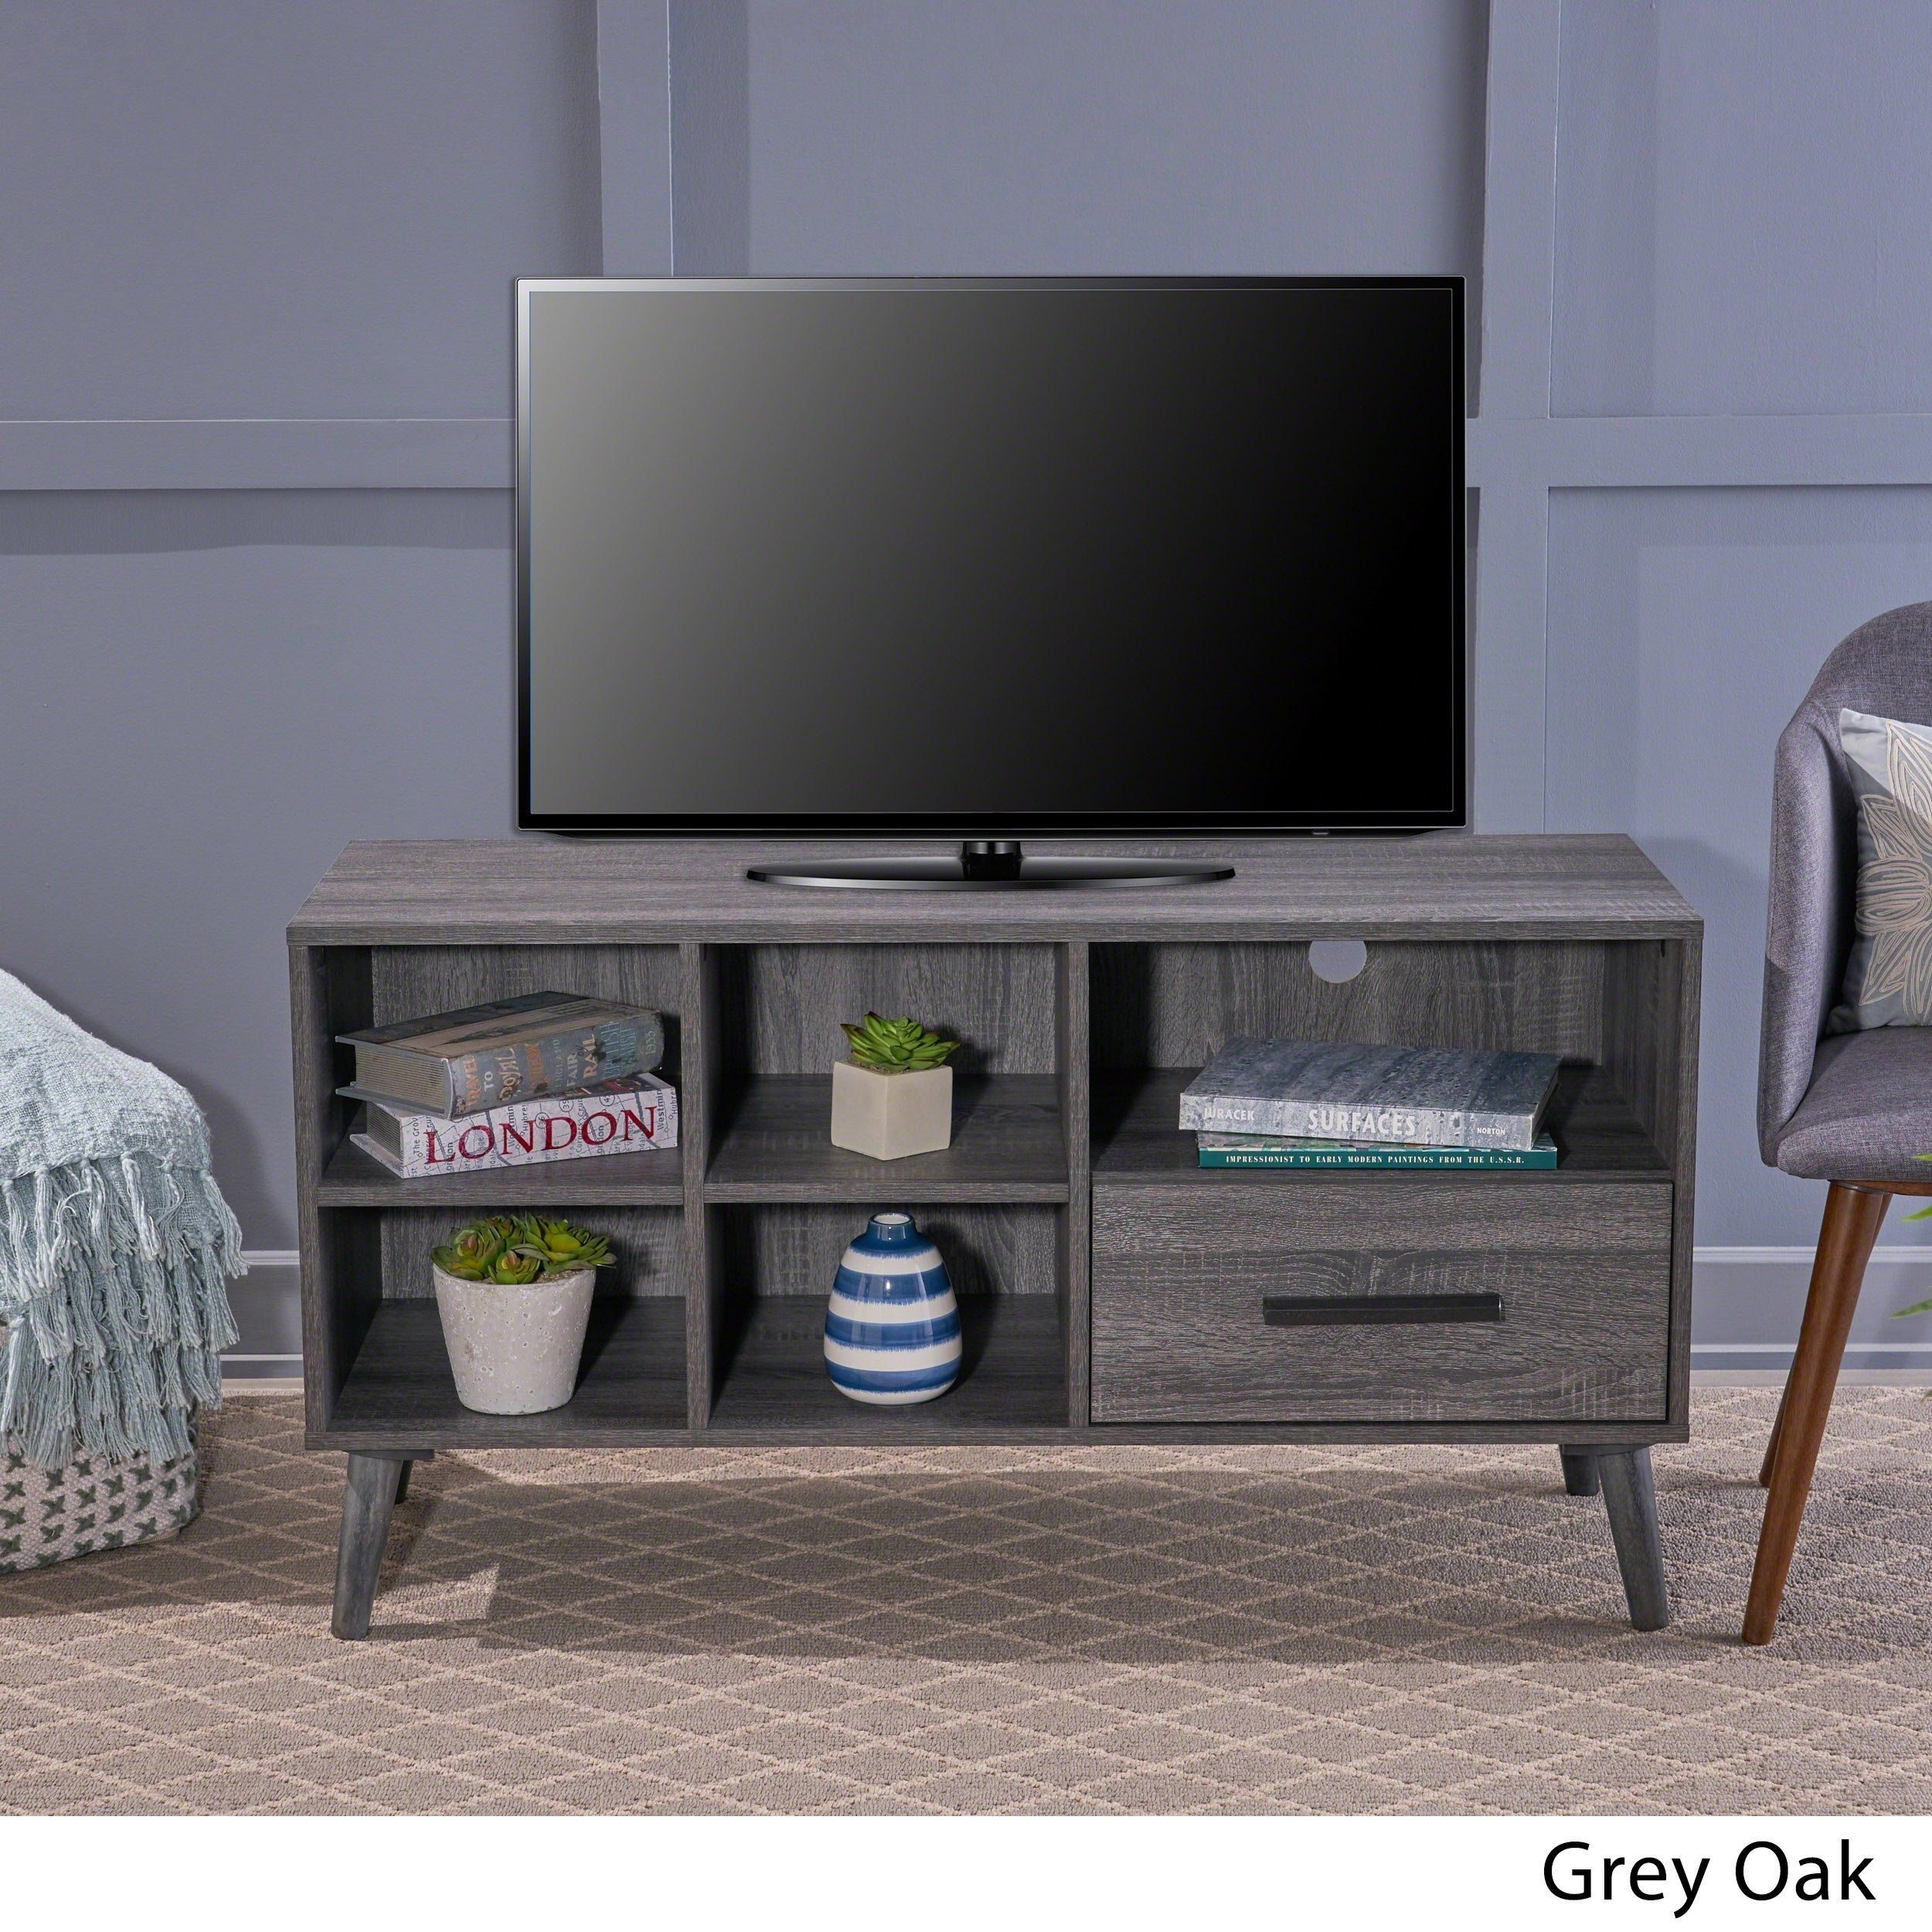 Buy Grey, 42 – 60 Inches Tv Stands & Entertainment Centers Online At Regarding Rowan 74 Inch Tv Stands (View 2 of 30)